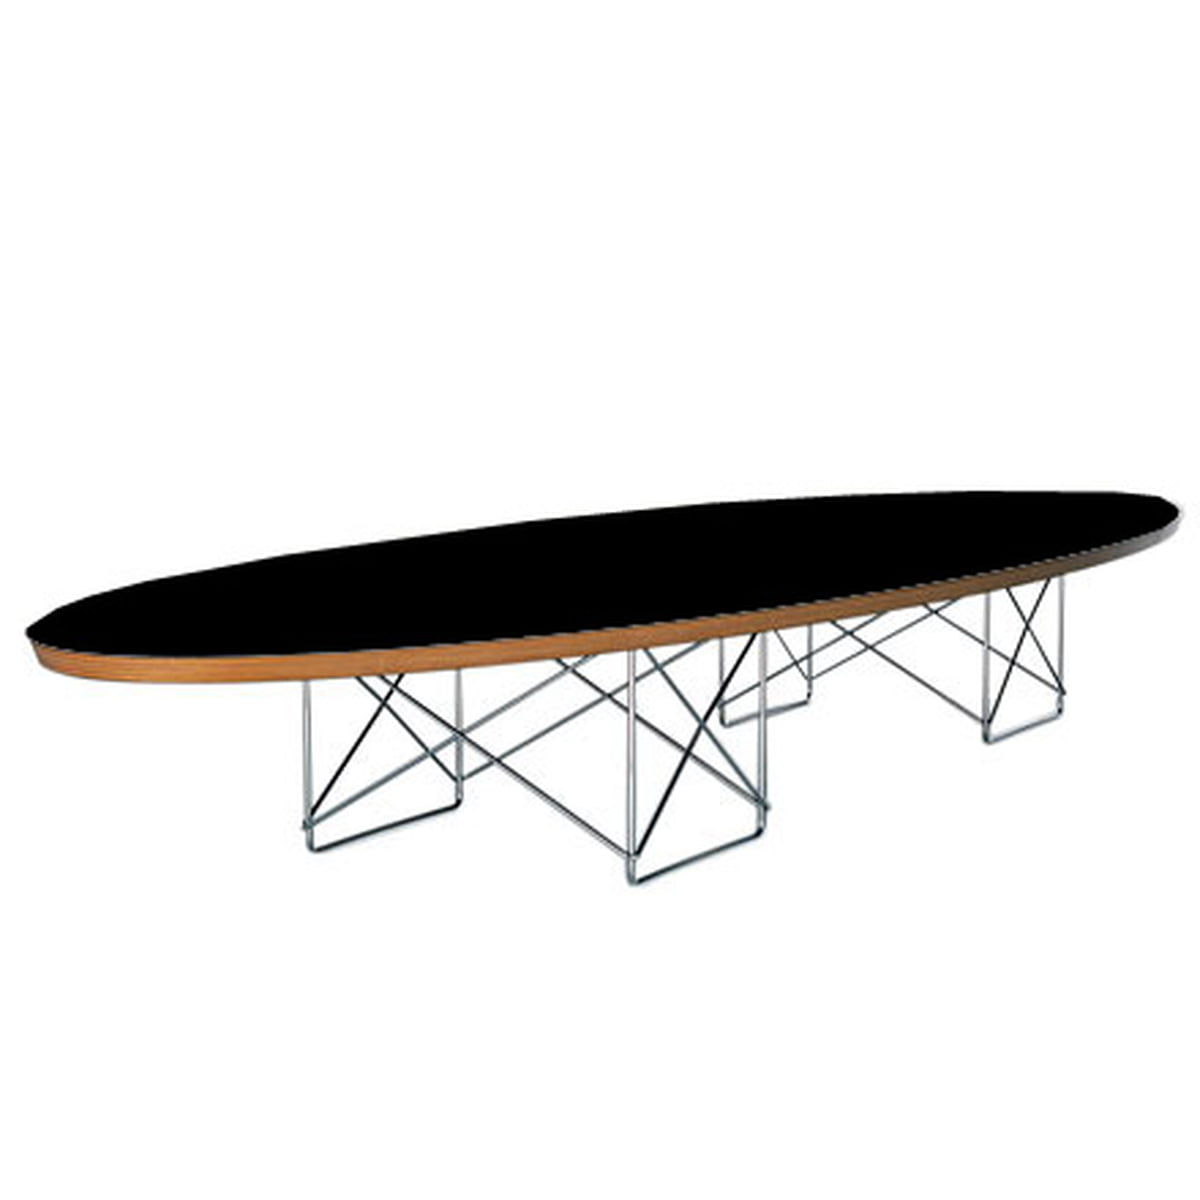 elliptical table etr vitra shop. Black Bedroom Furniture Sets. Home Design Ideas